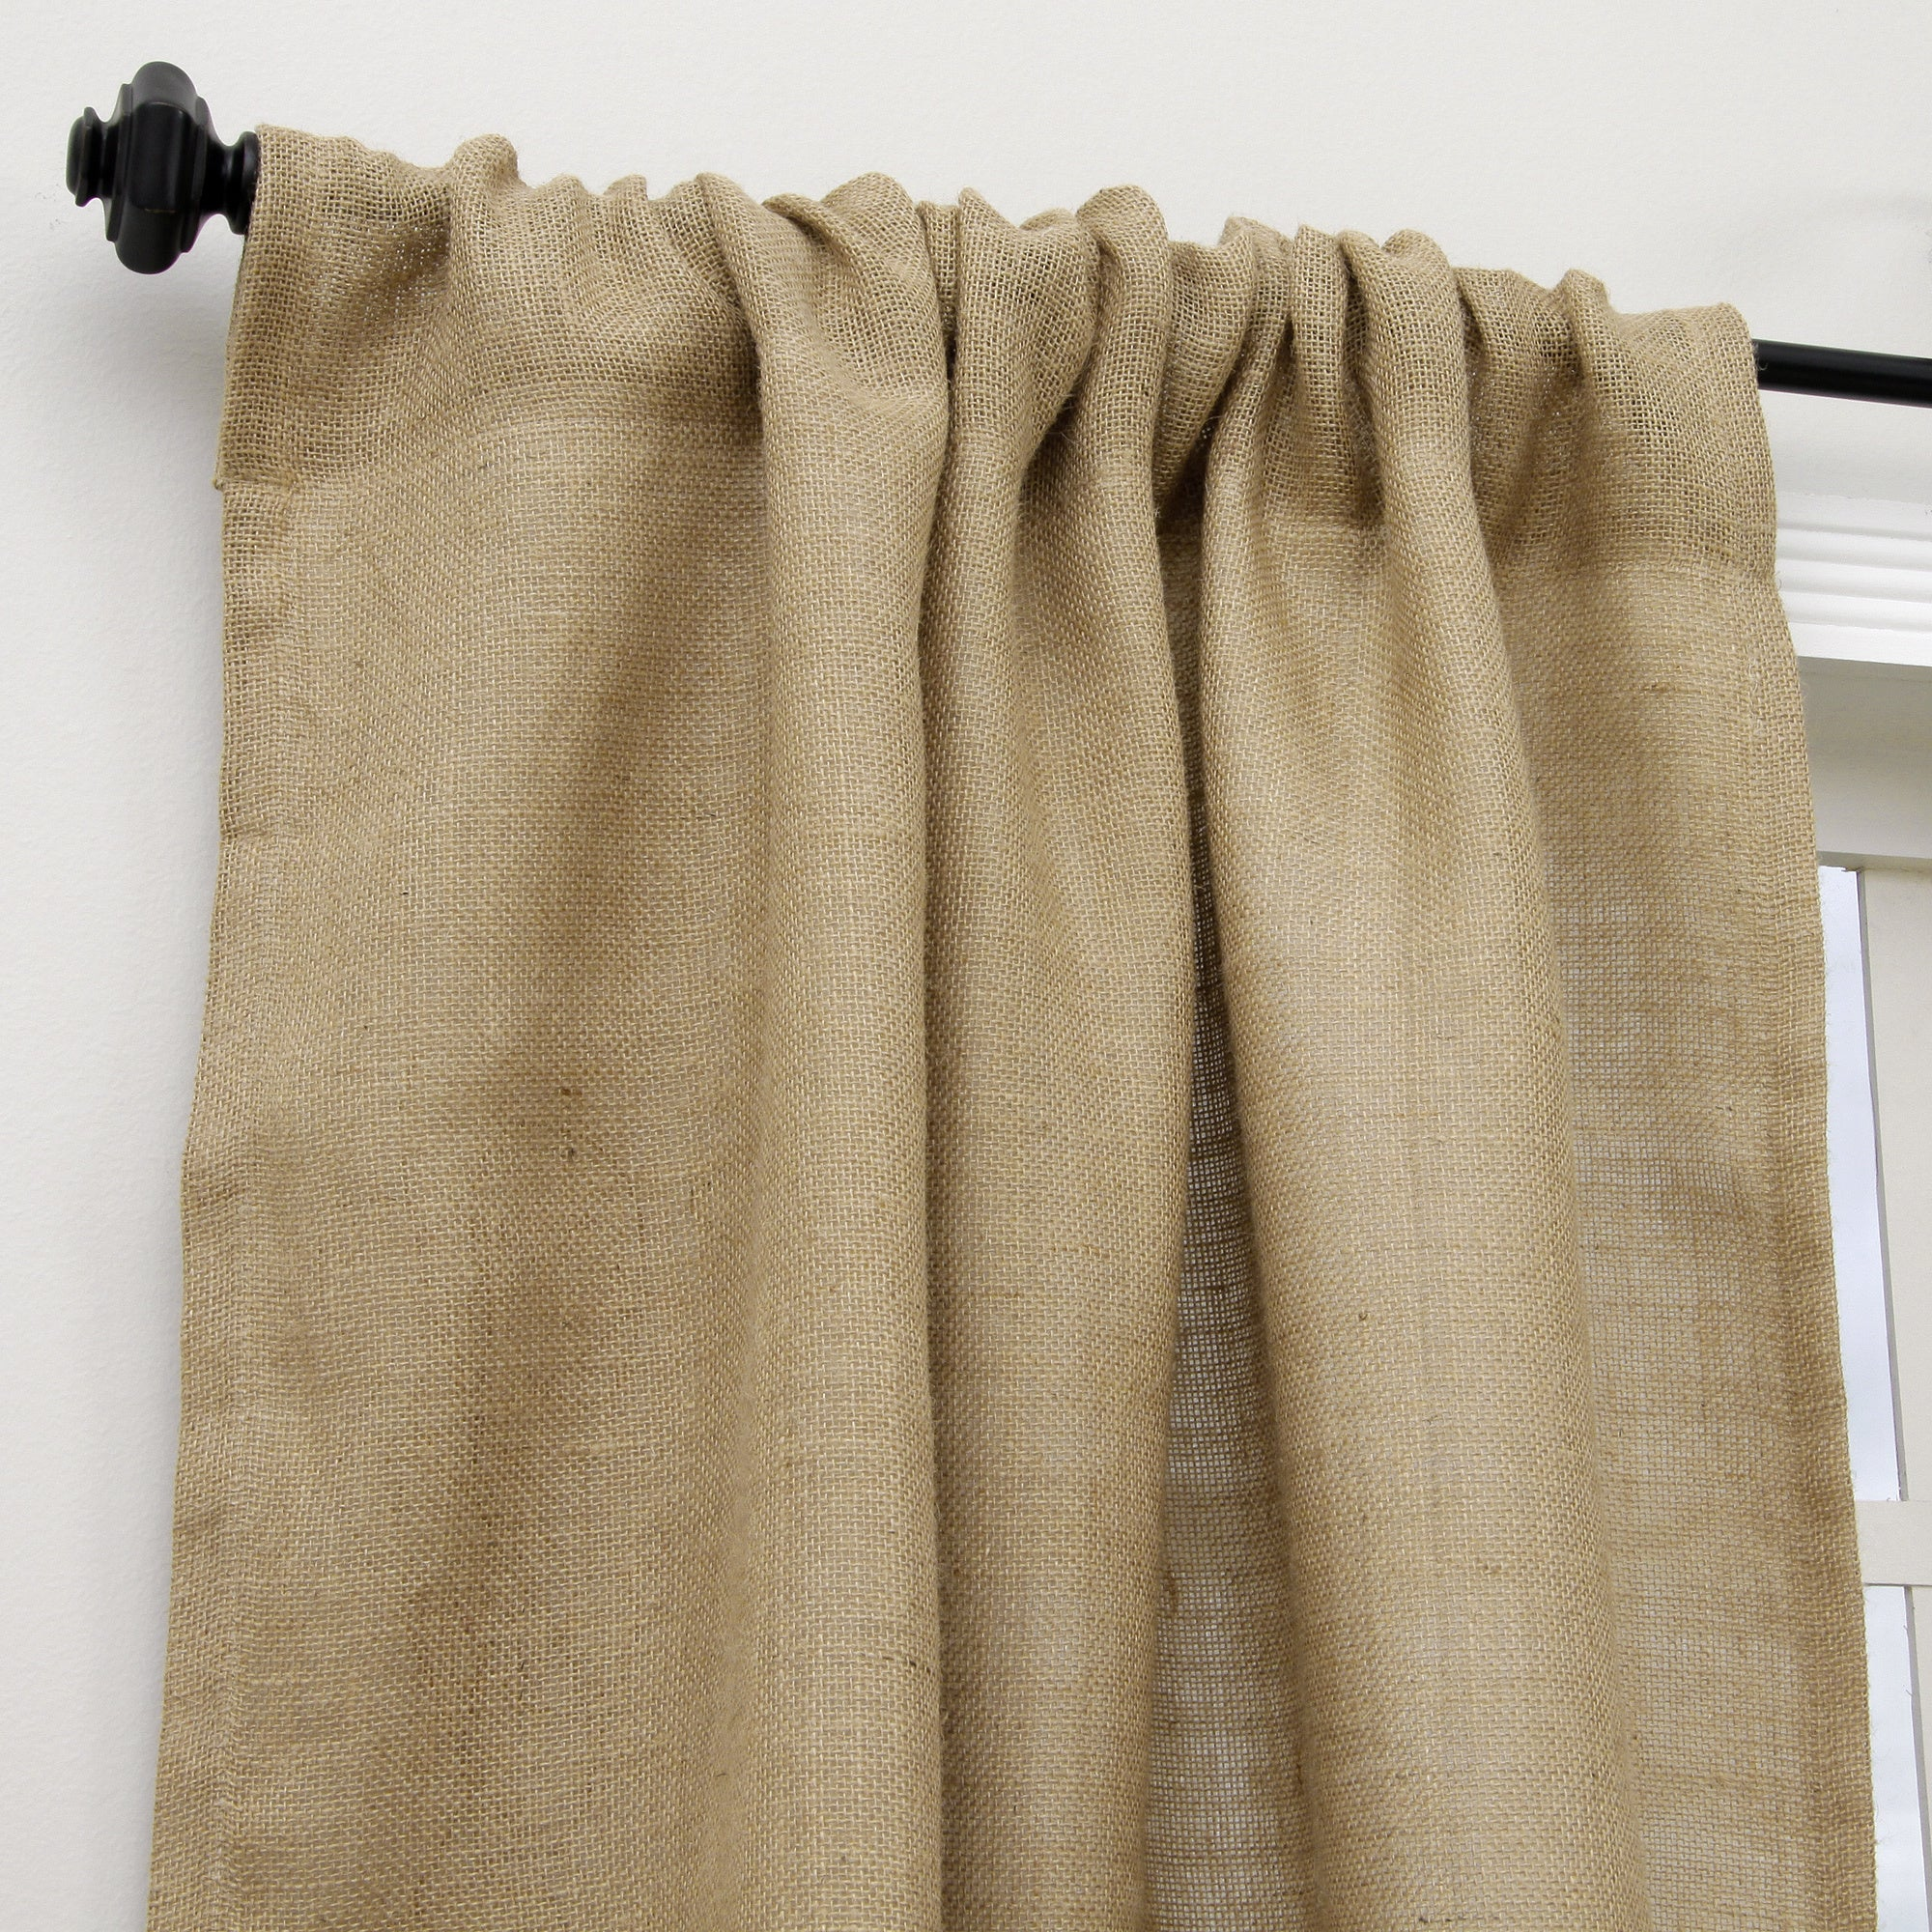 Open Weave Lined Burlap 96-inch Curtain Panel - Free Shipping ...